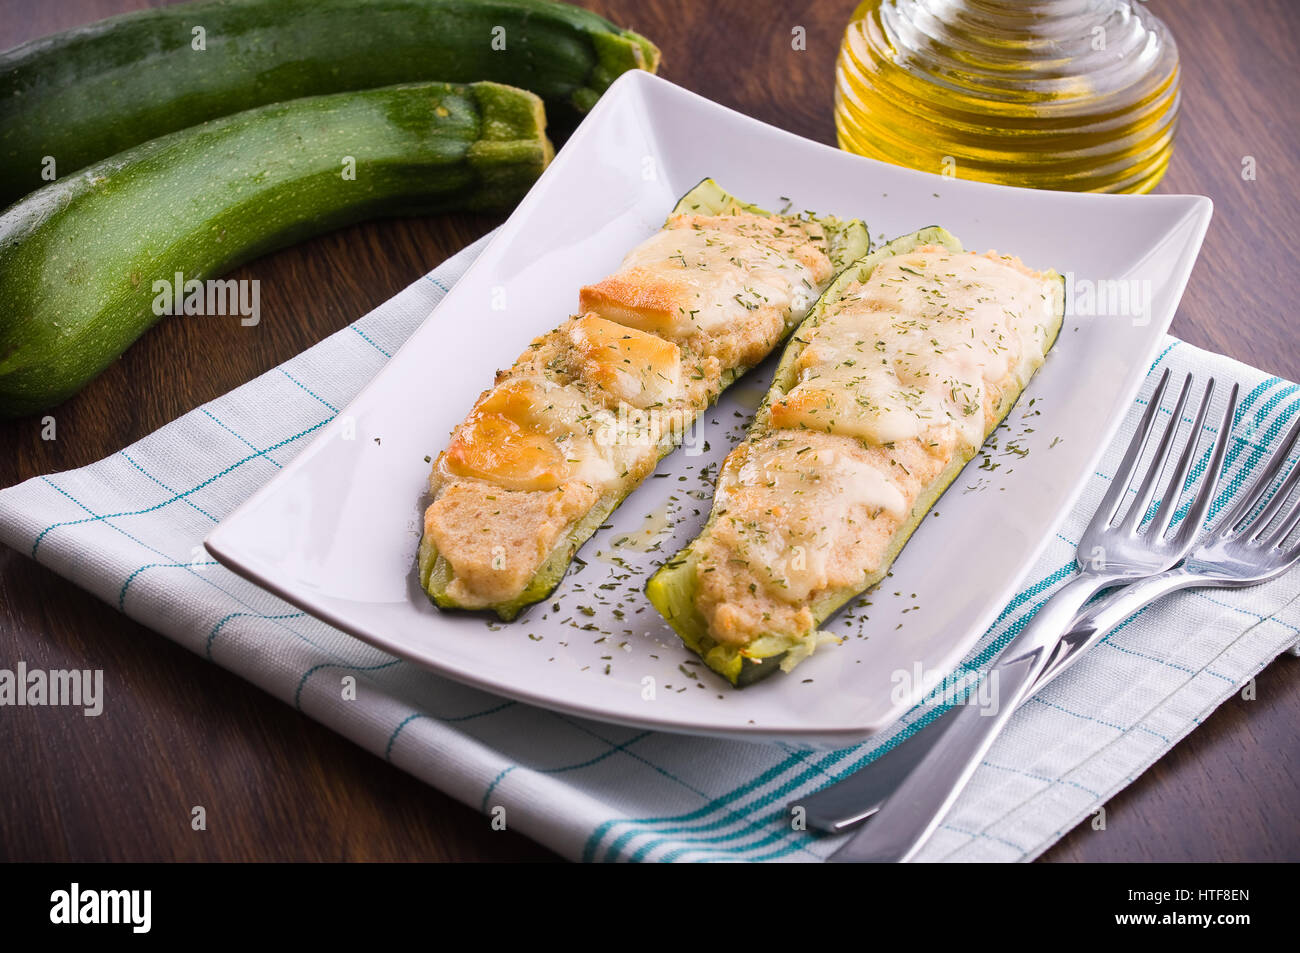 Courgettes farcies au fromage. Photo Stock